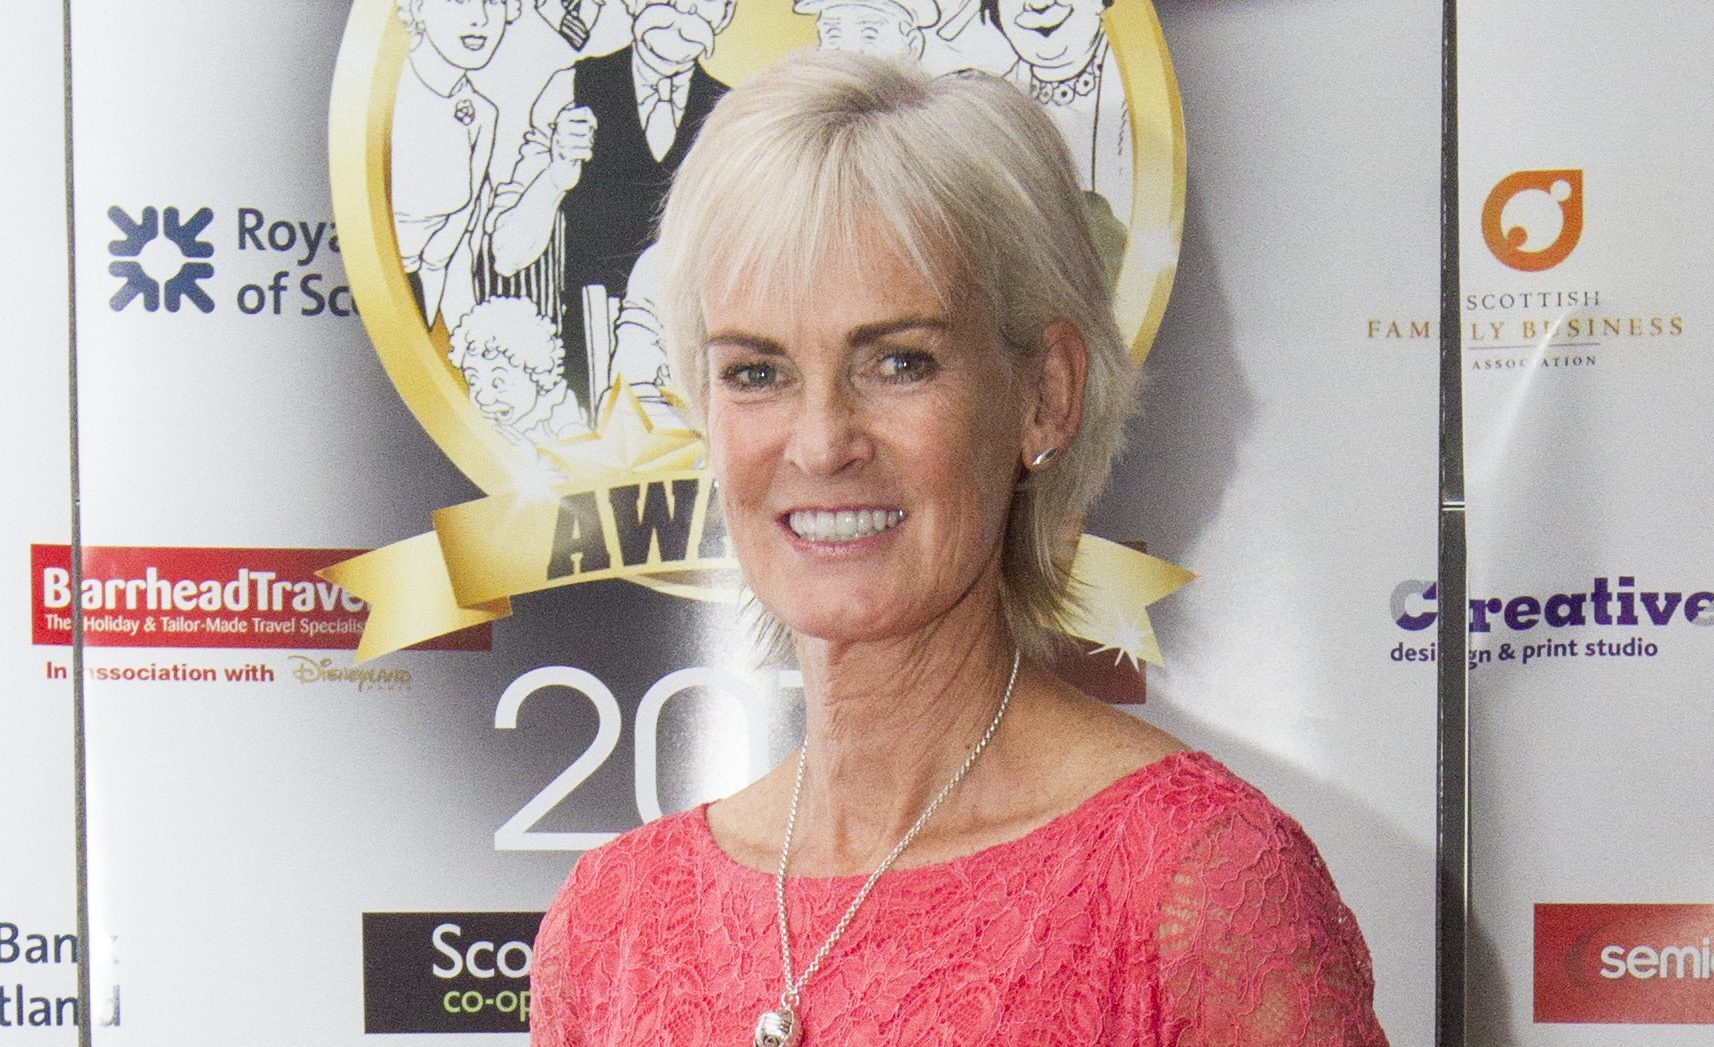 Judy Murray (Chris Austin / DC Thomson)